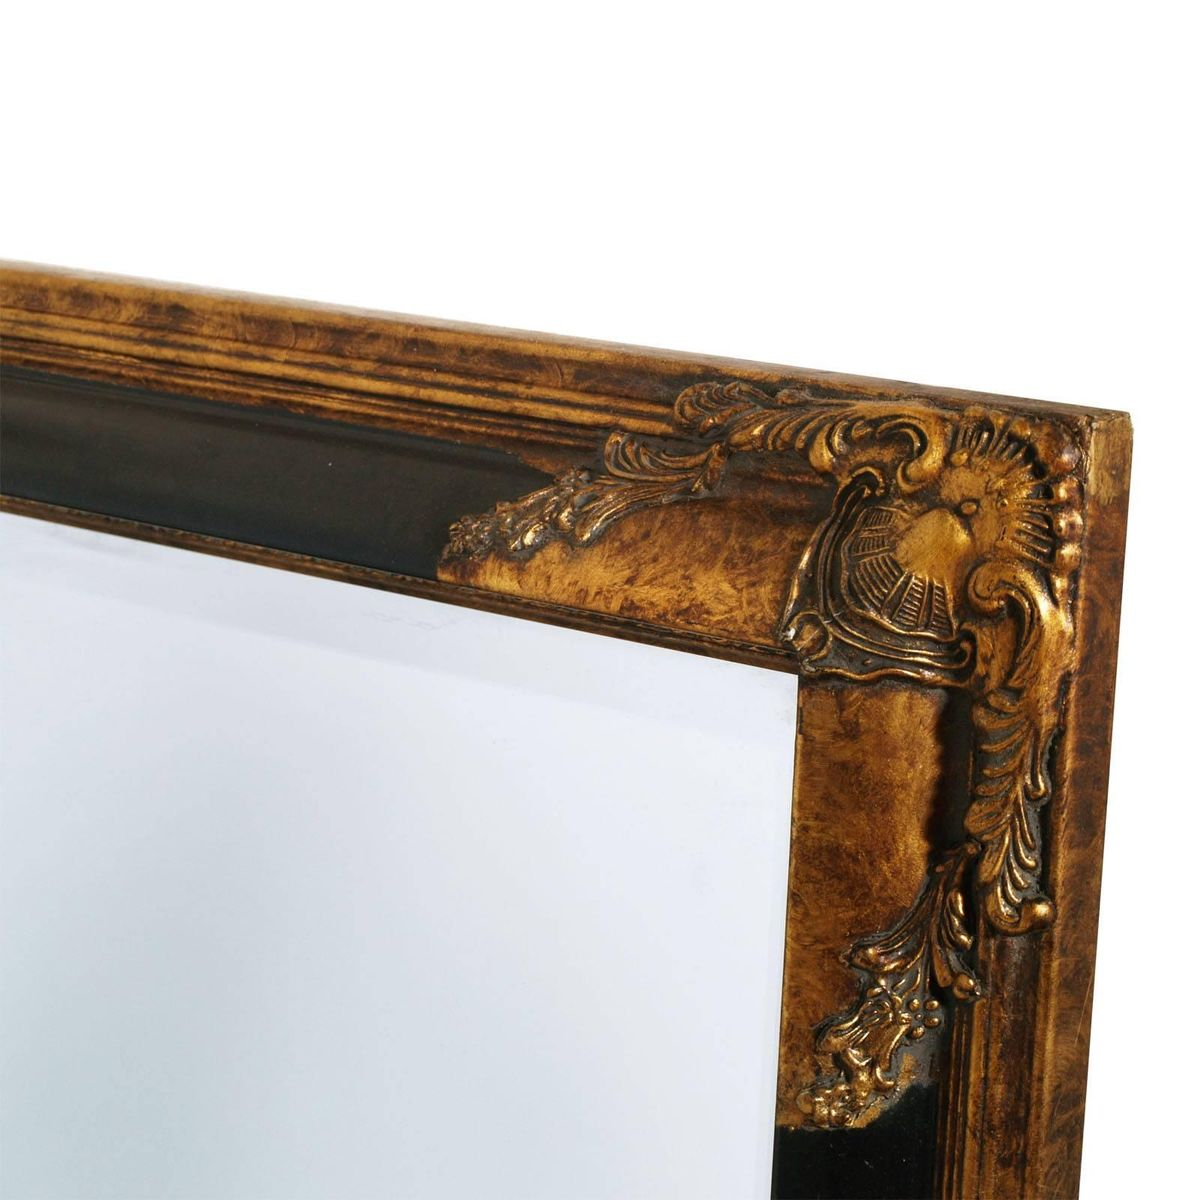 Florentine Art Deco Mirror with Carved Frame, 1940s for sale at Pamono